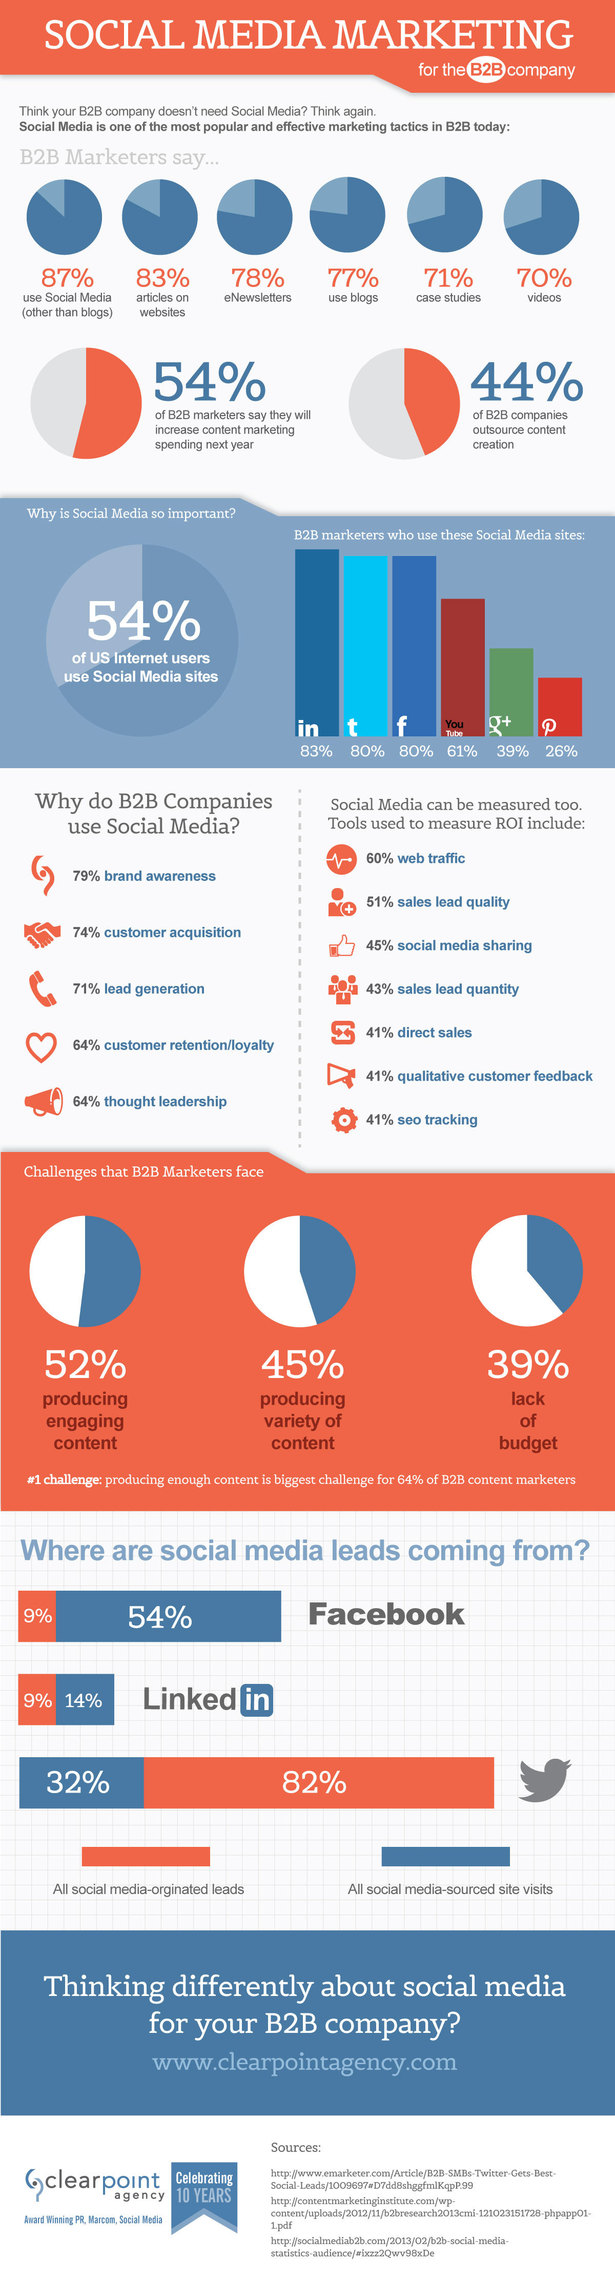 This week's finest digital marketing infographic